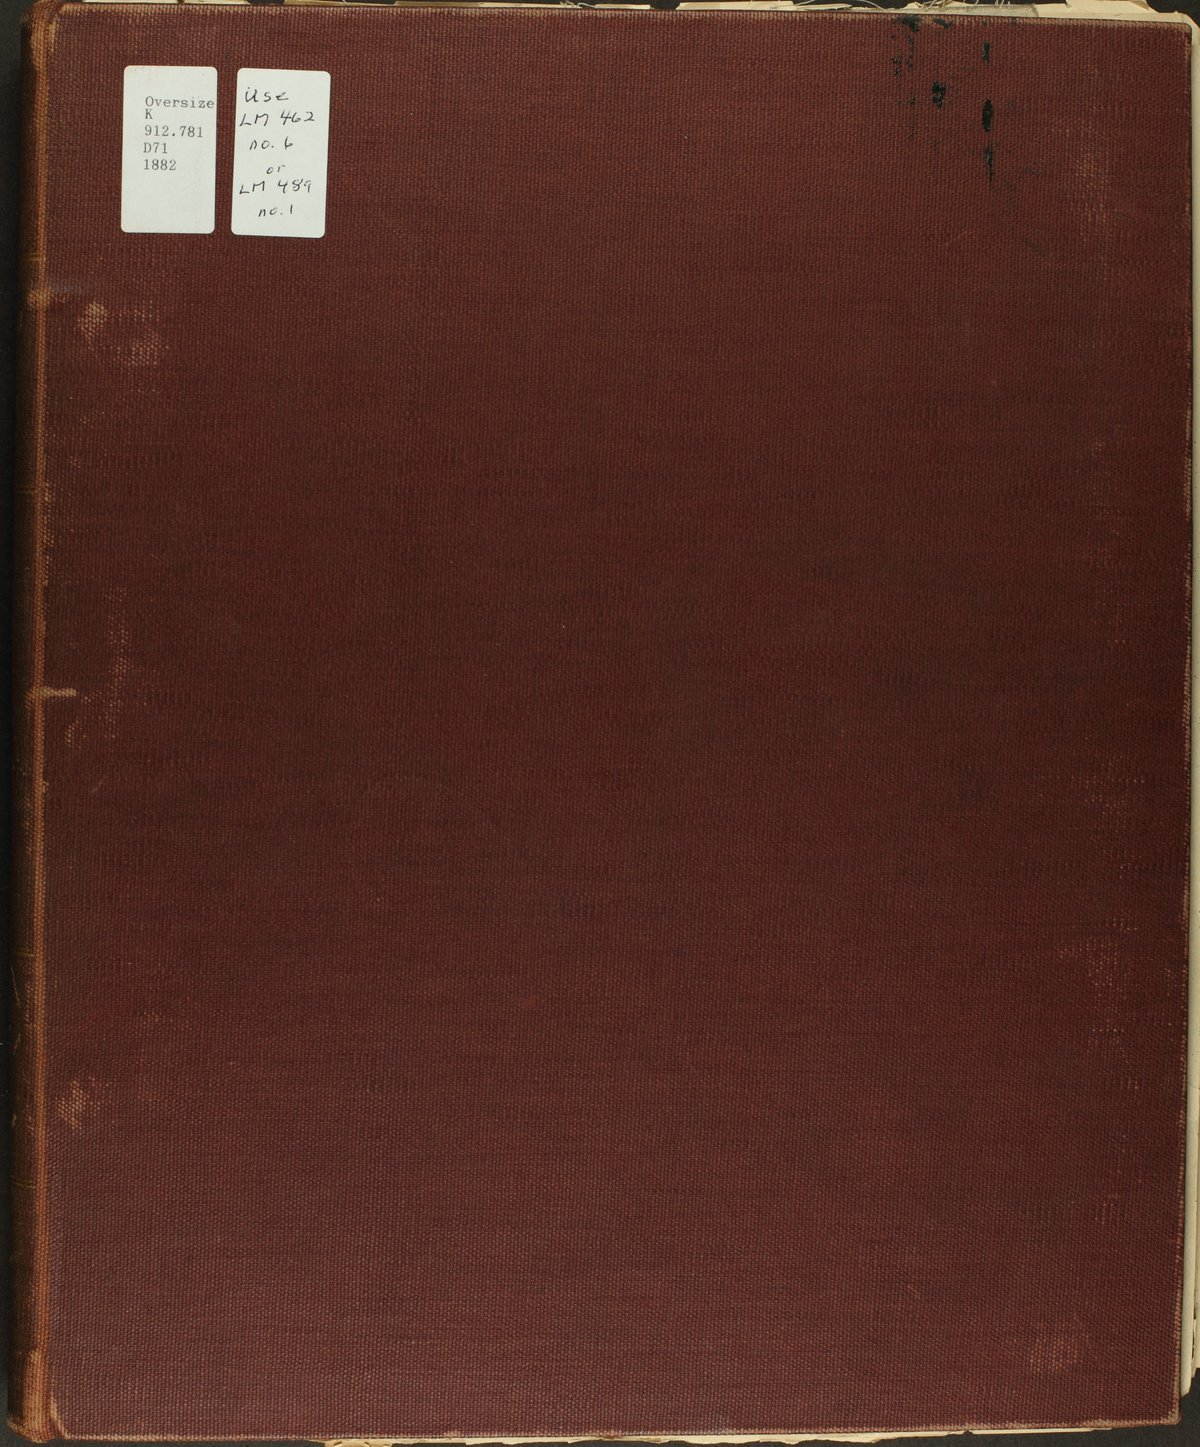 Historical plat book of Doniphan County, Kansas - Front Cover